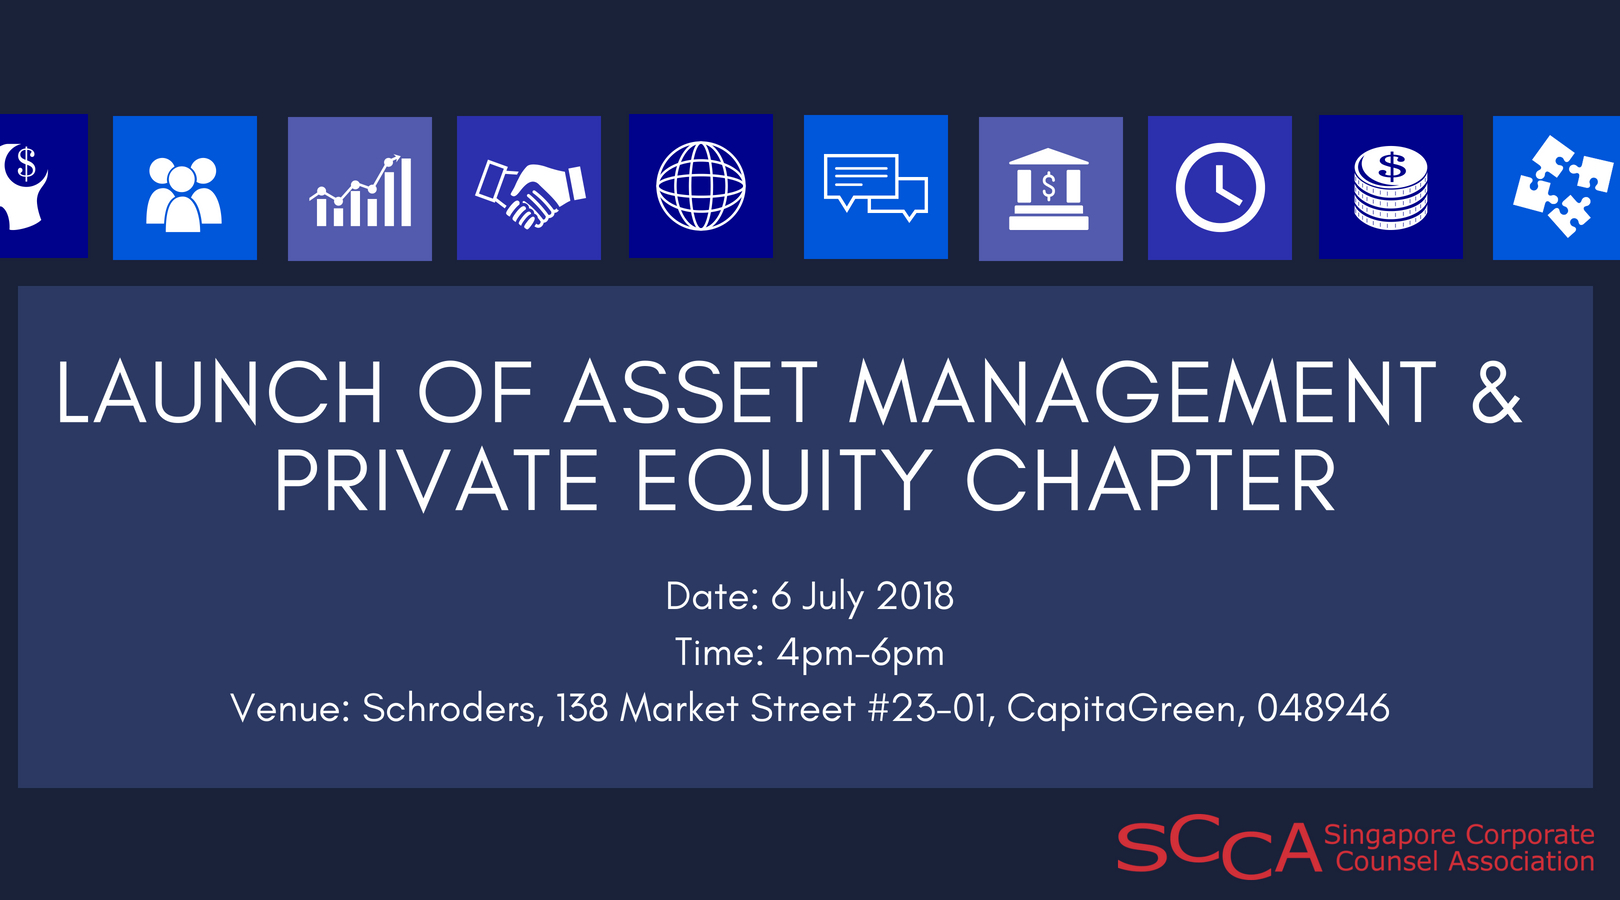 LAUNCH OF ASSET MANAGEMENT & PRIVATE EQUITY CHAPTER